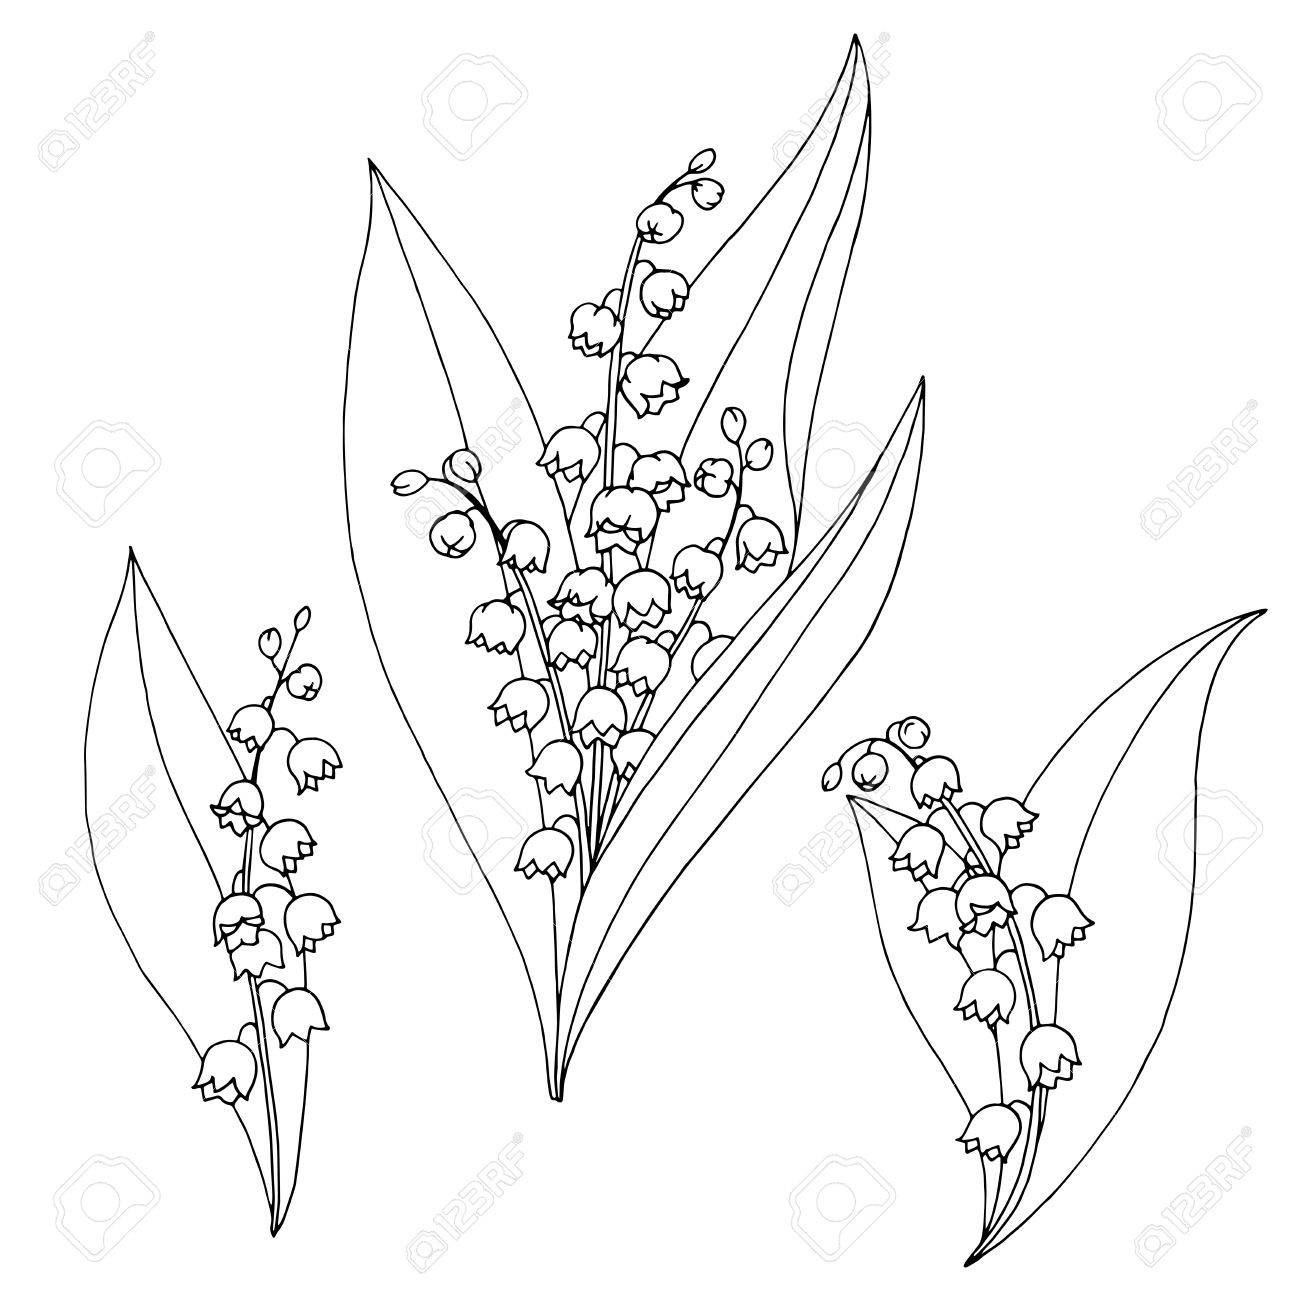 Lily of the valley drawing at getdrawings free for personal 1300x1300 lily of the valley flower graphic black white isolated sketch izmirmasajfo Images